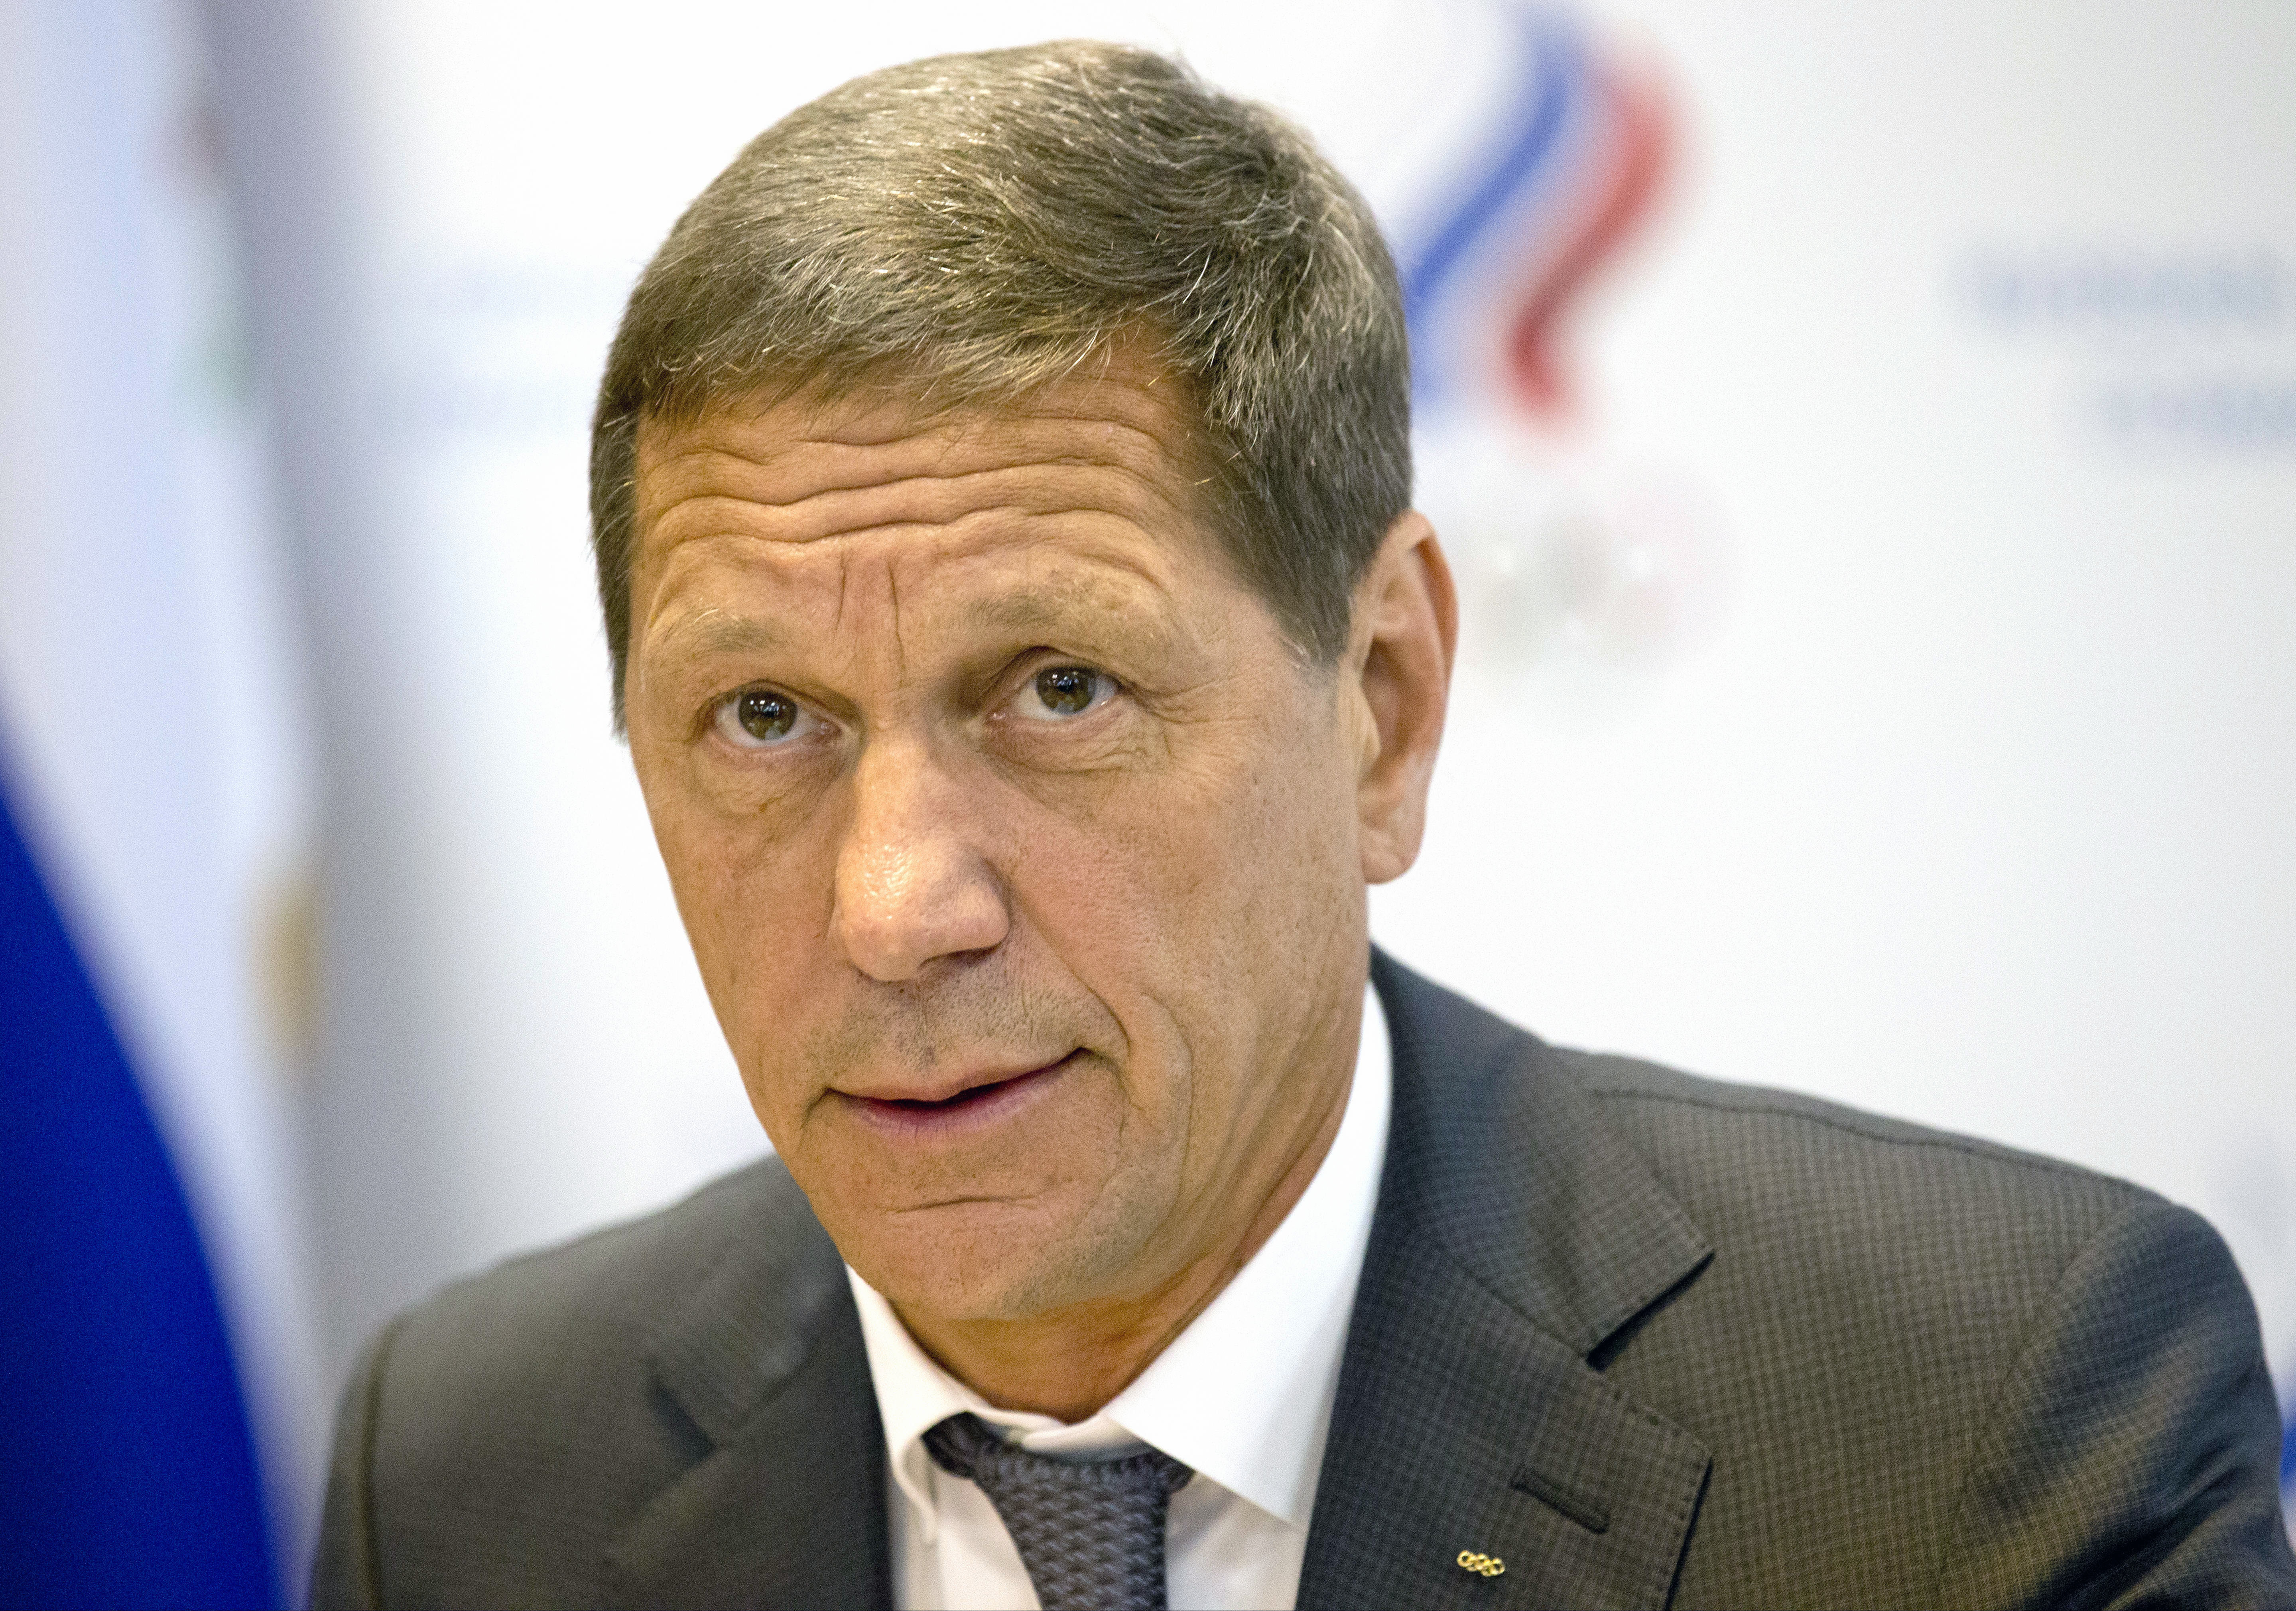 President of Russia's Olympic Committee Alexander Zhukov opens the meeting of Russia's Olympic Committee in Moscow, Wednesday, July 20, 2016. Zhukov says he expects a final decision by Sunday on whether the entire Russian team will be banned from next mon